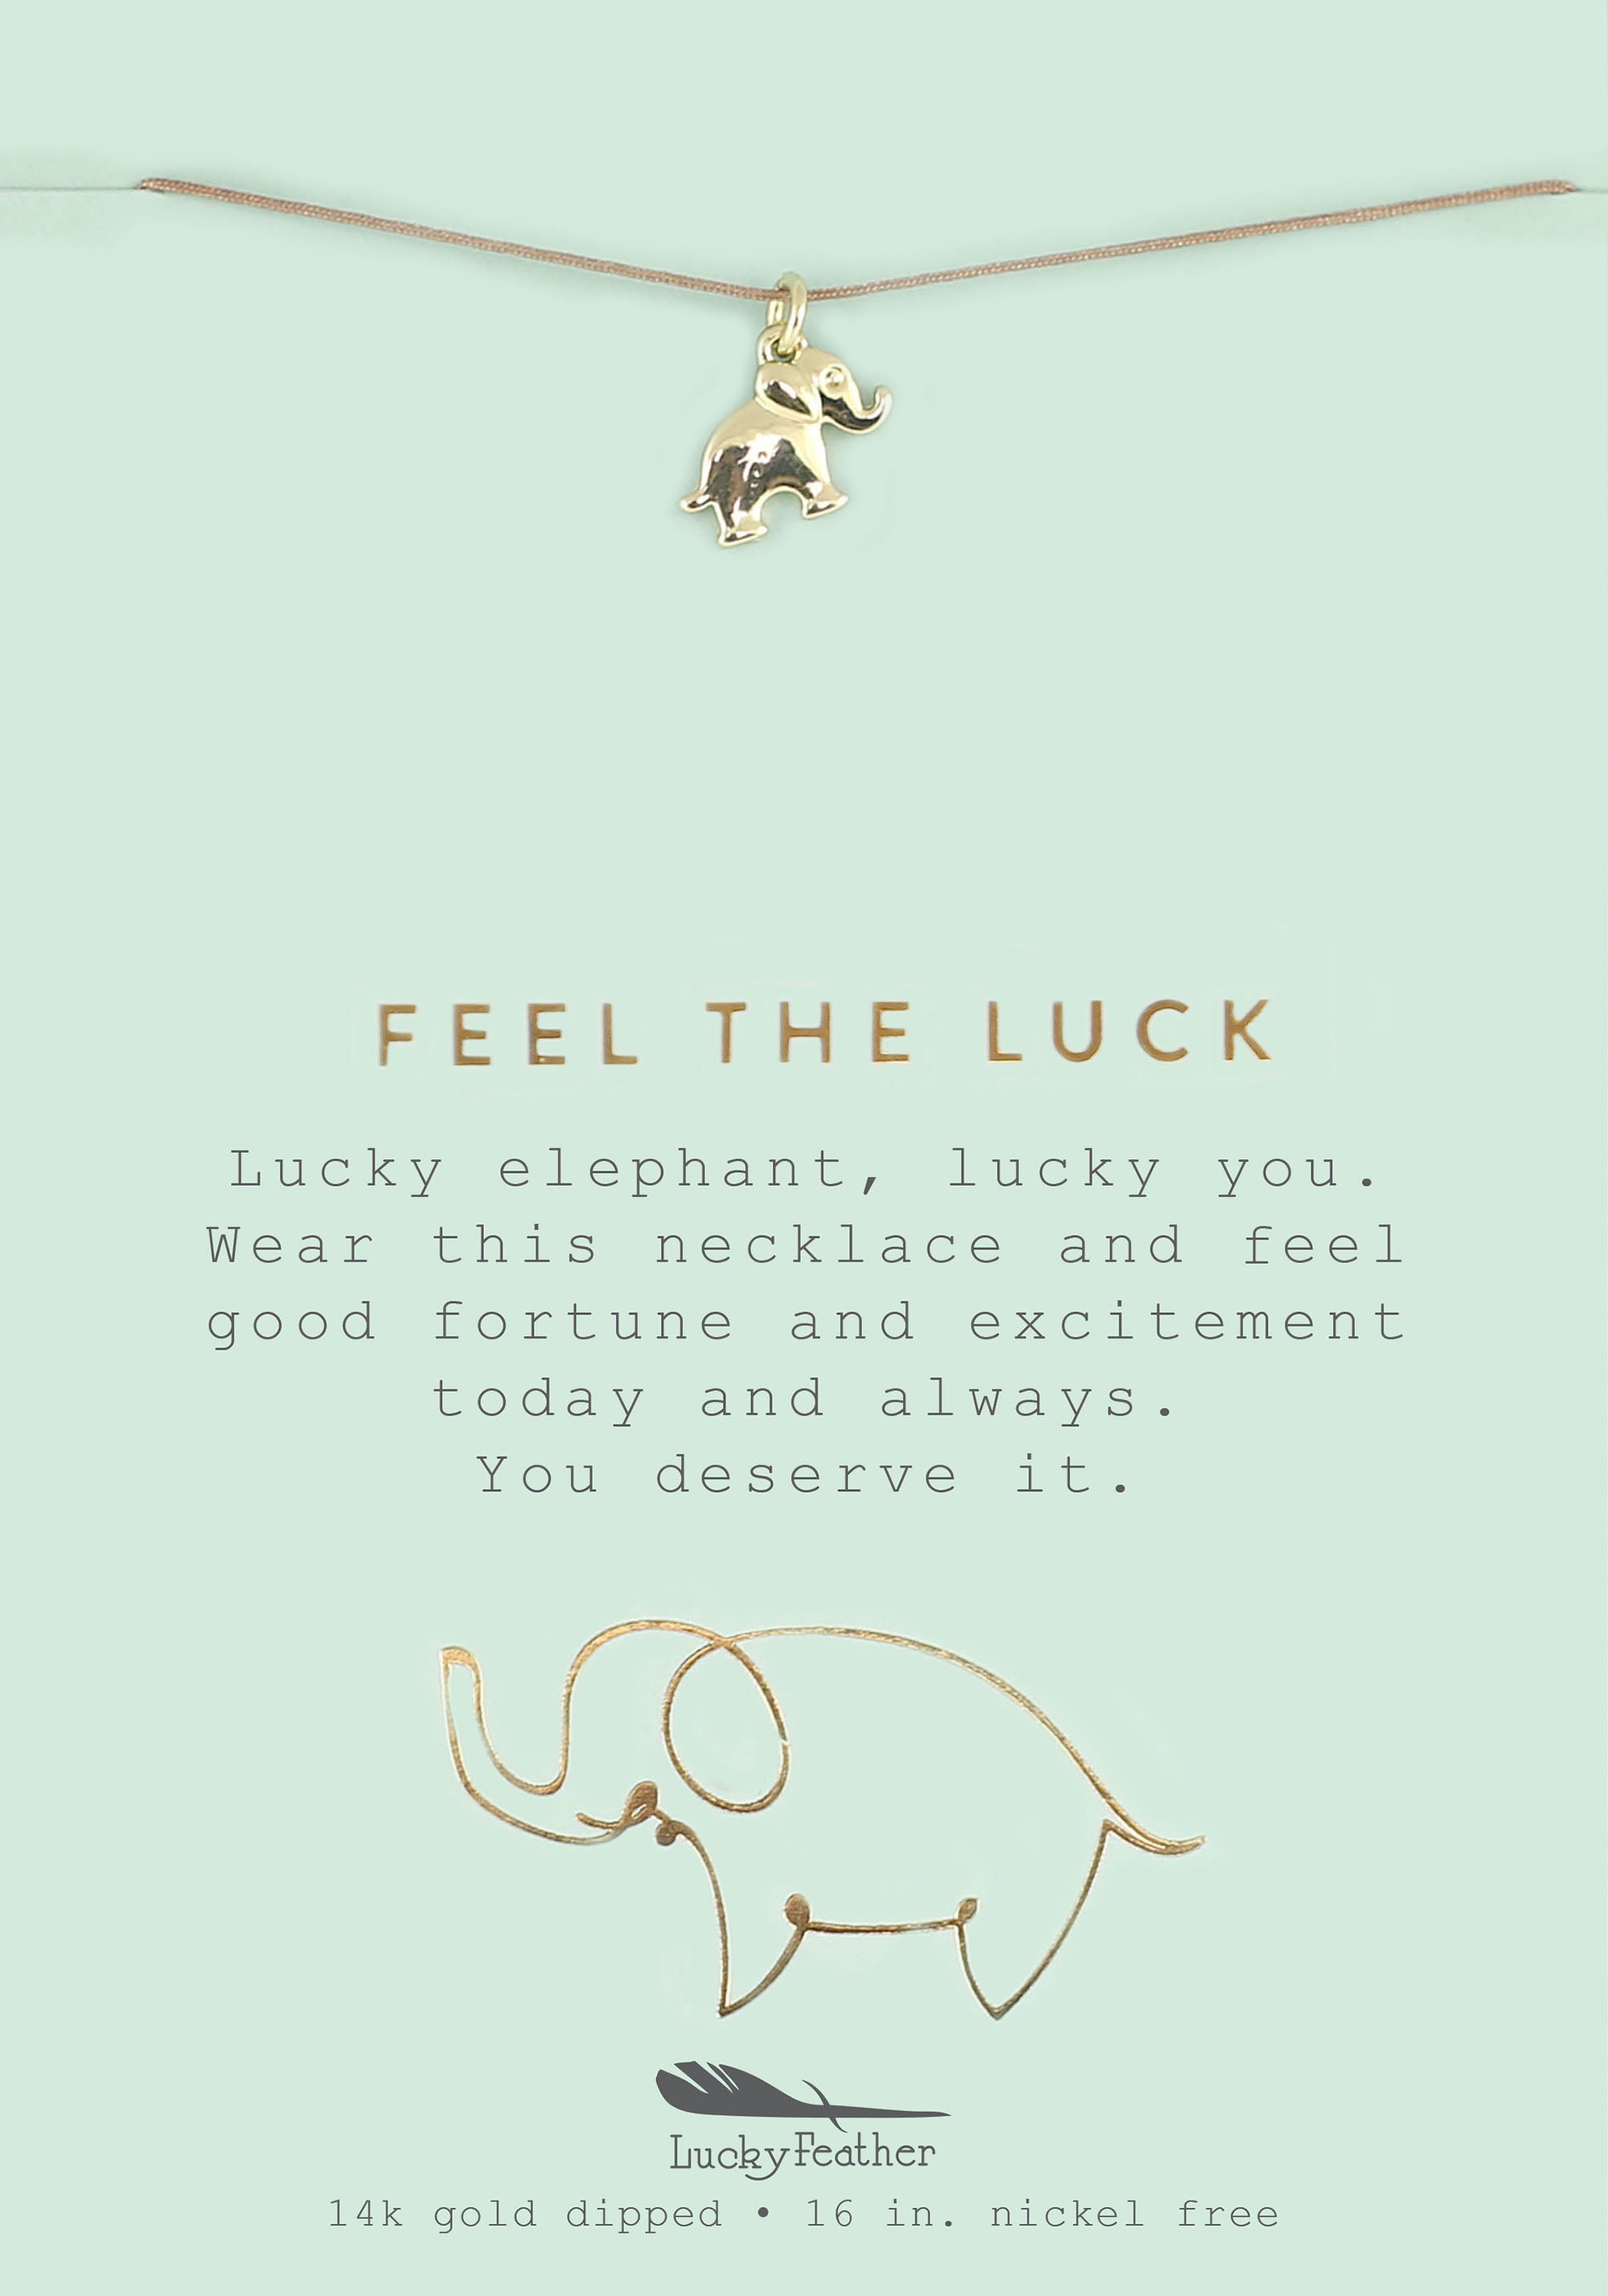 Feel the Luck, Gold Elephant Necklace